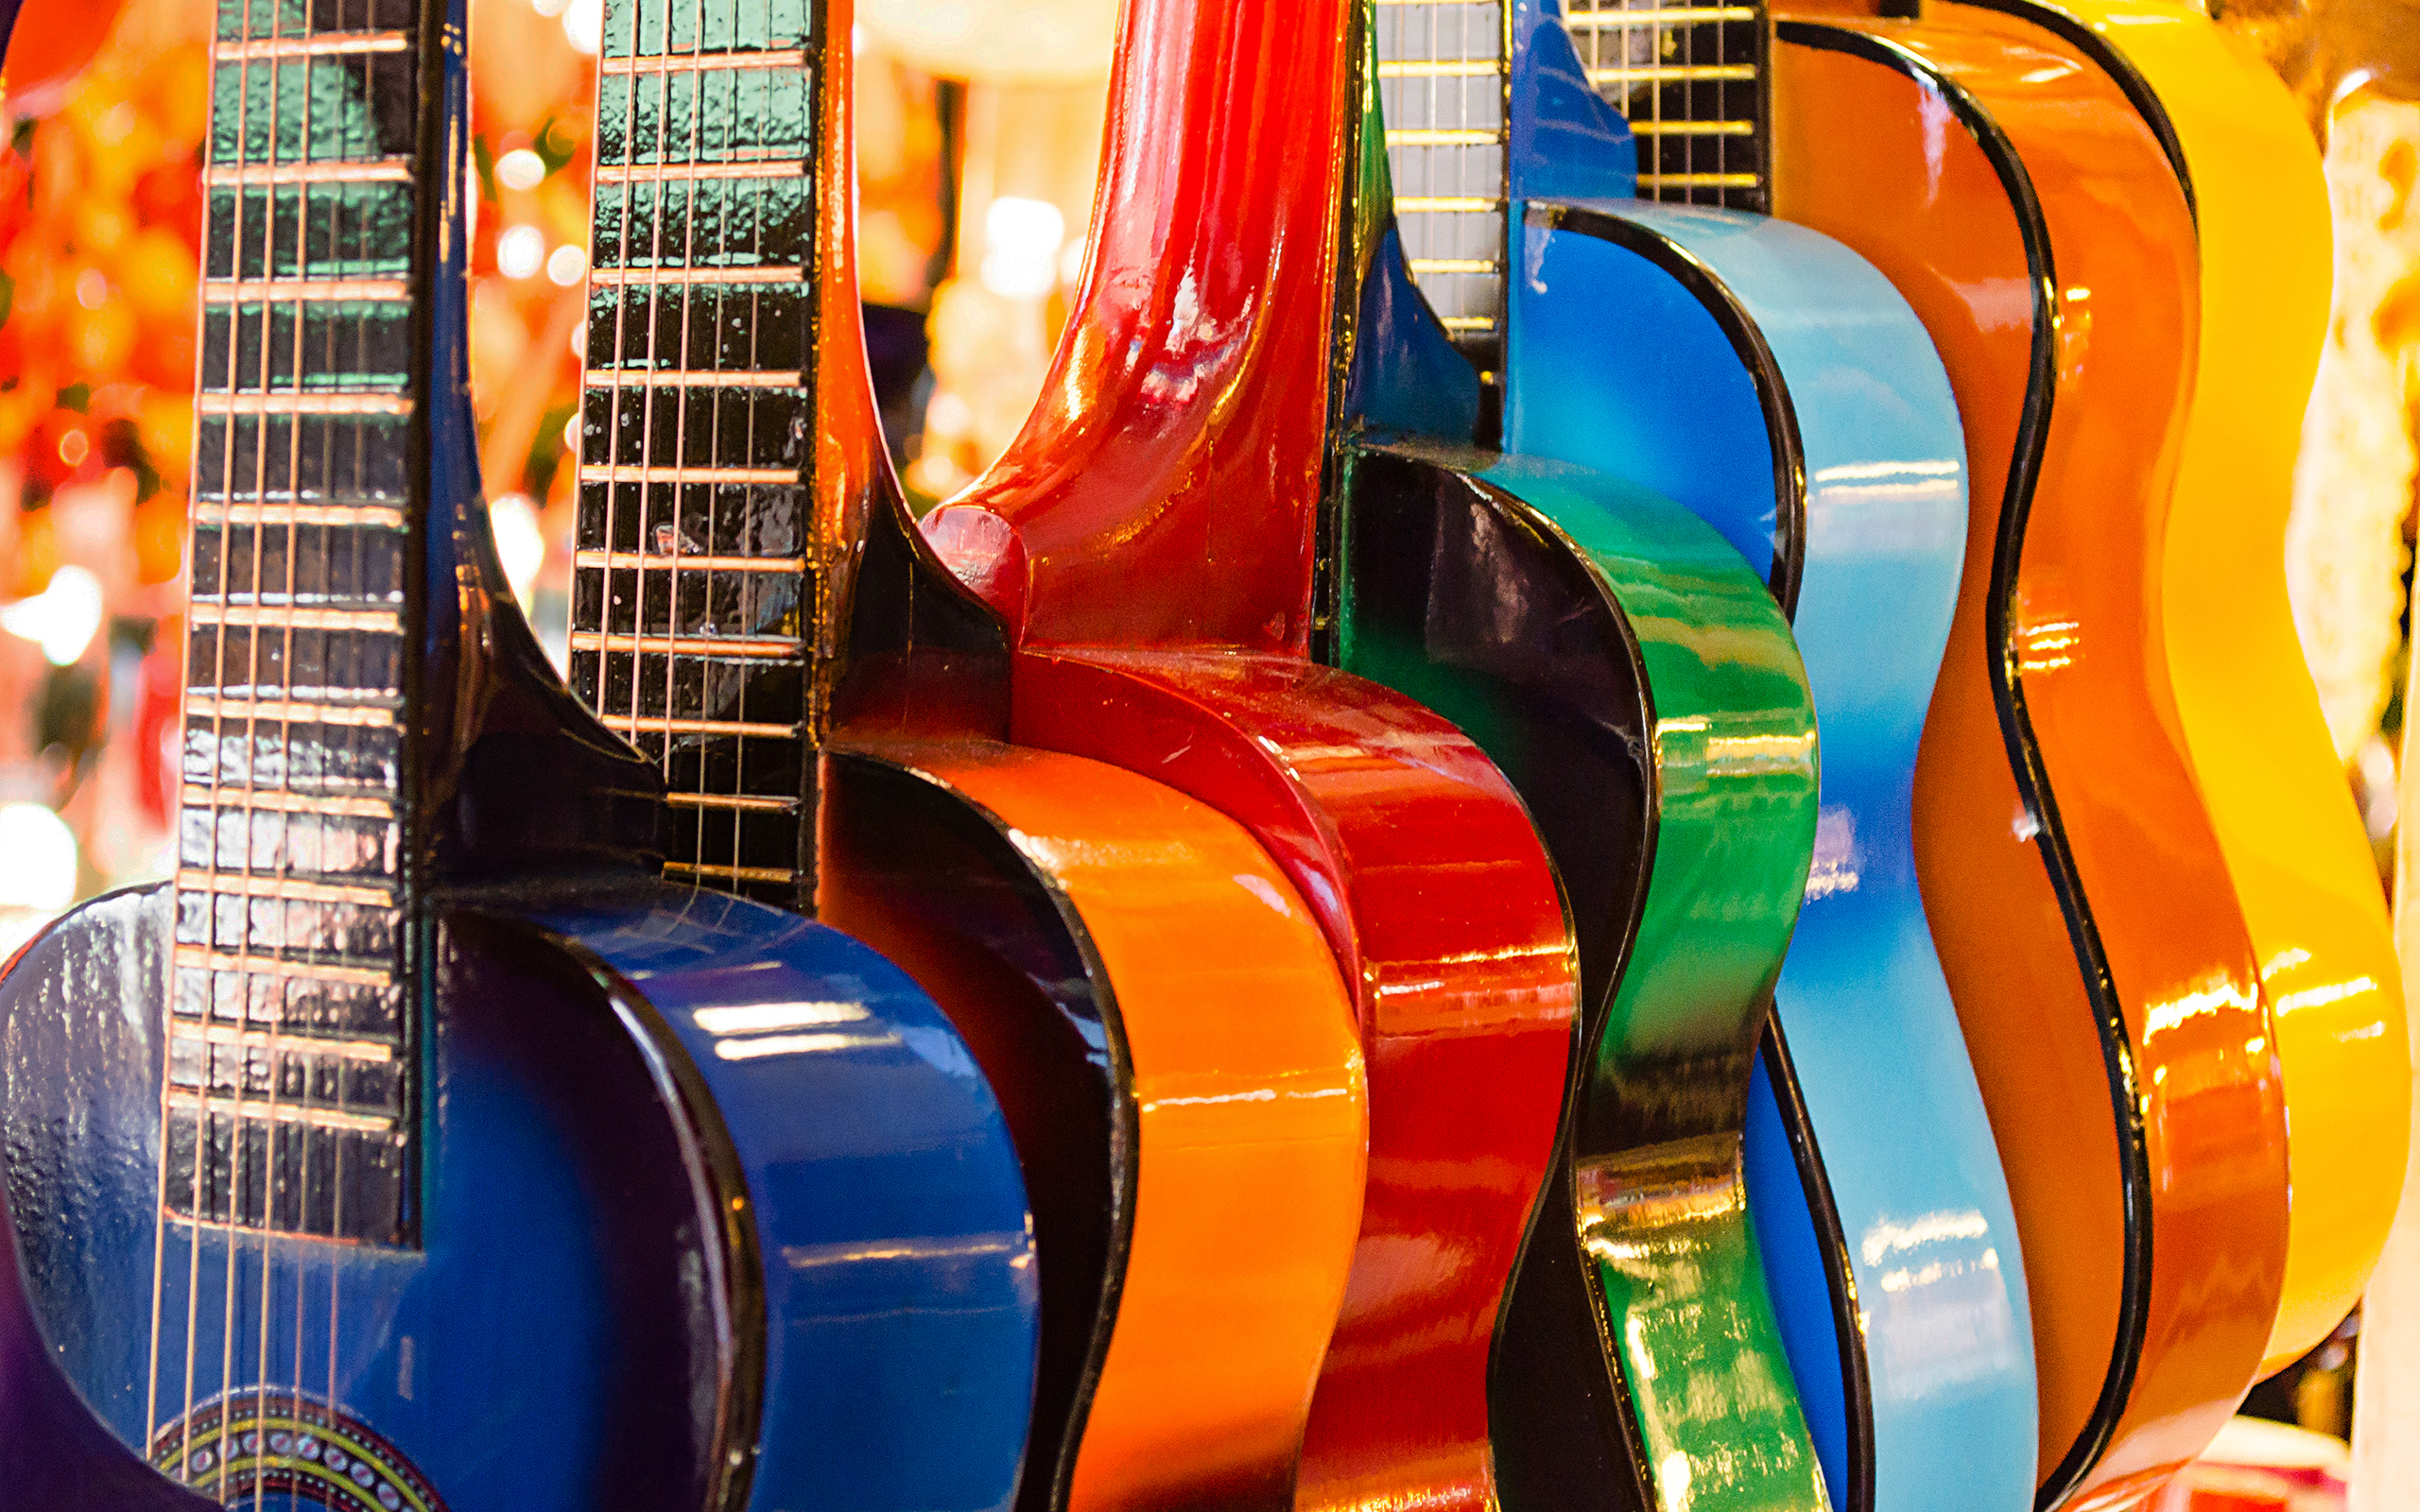 Colorful Guitars HD3696318480 - Colorful Guitars HD - Scandroid, Guitars, Colorful